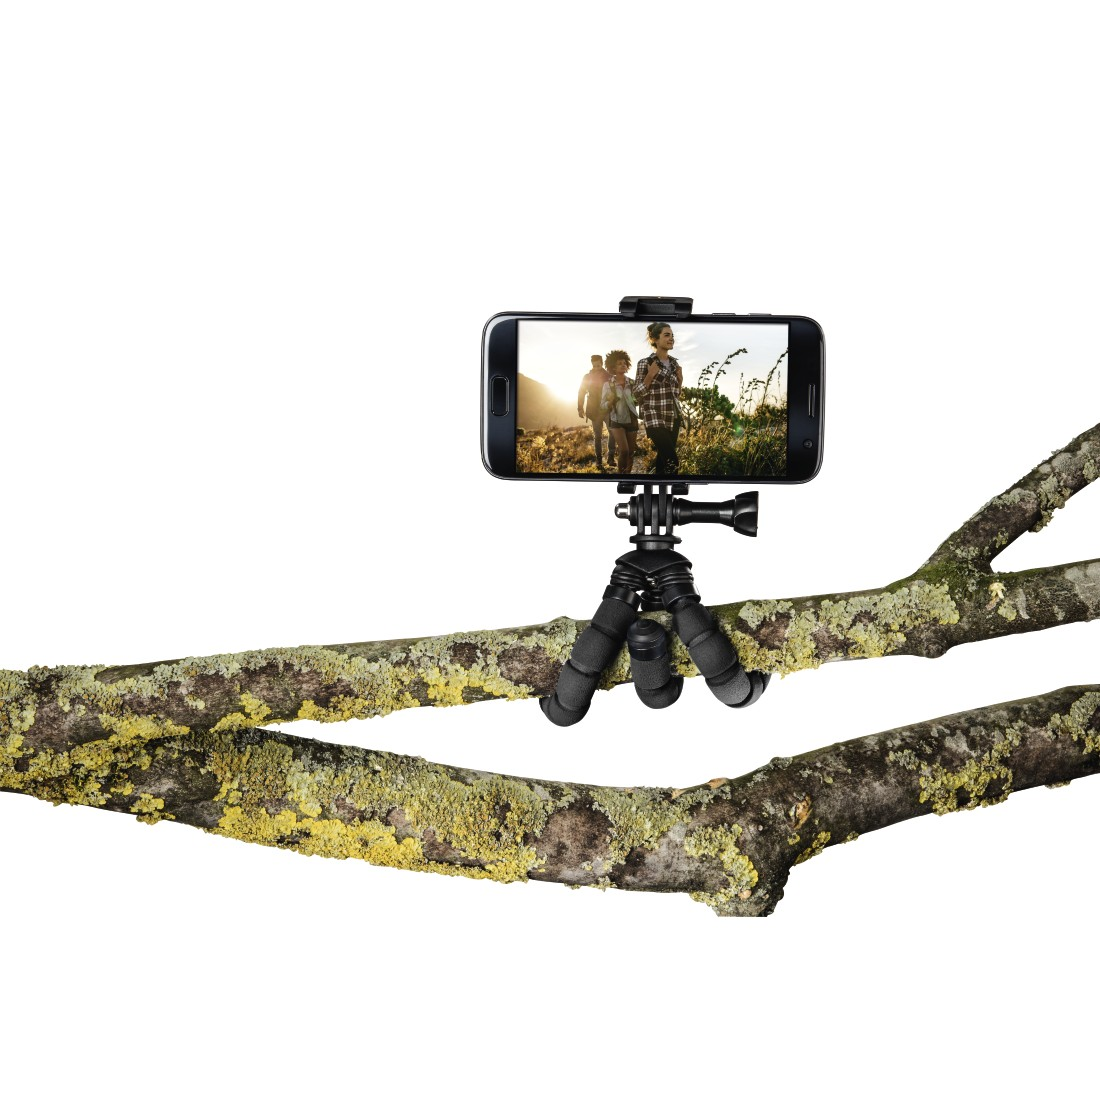 "awx High-Res Appliance - Hama, ""Flex"" Mini Tripod for Smartphones & GoPro Devices, 5.5- 7.8 cm"